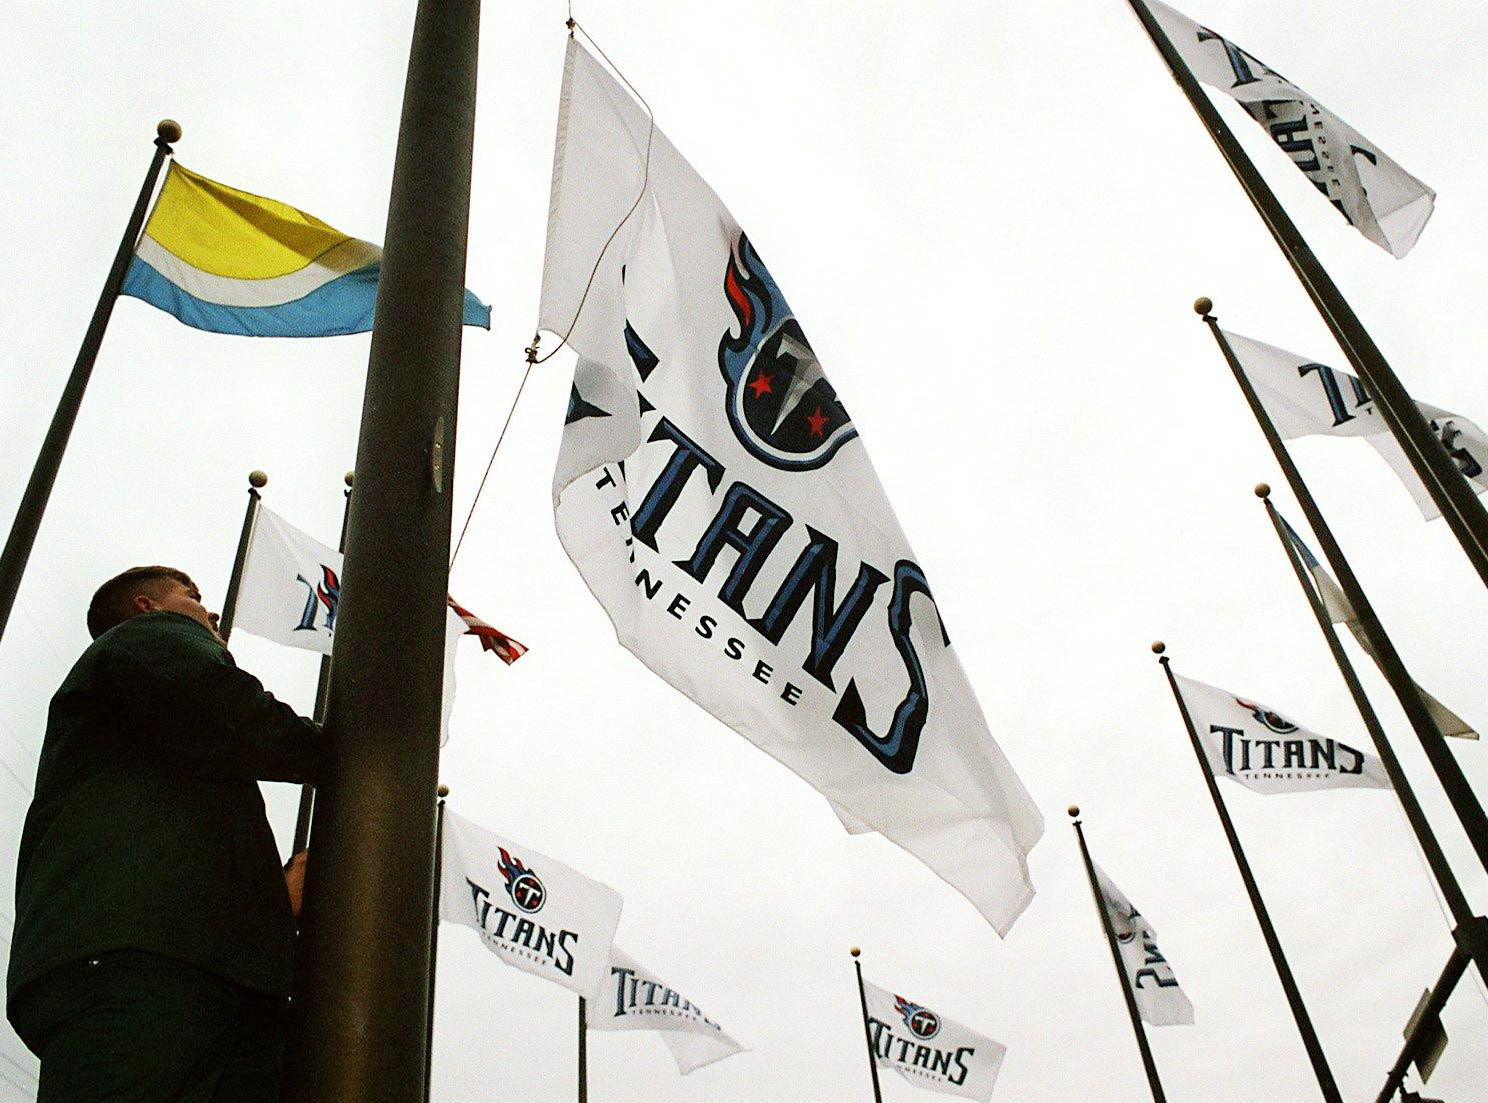 Metro Parks employee William Bryant hangs 10 Titans flags at Riverfront Park, replacing all but the U.S. Flag and the Riverfront Park flags Jan. 28, 2000 as the Titans get ready to face the St. Louis Rams in Super Bowl XXXIV.